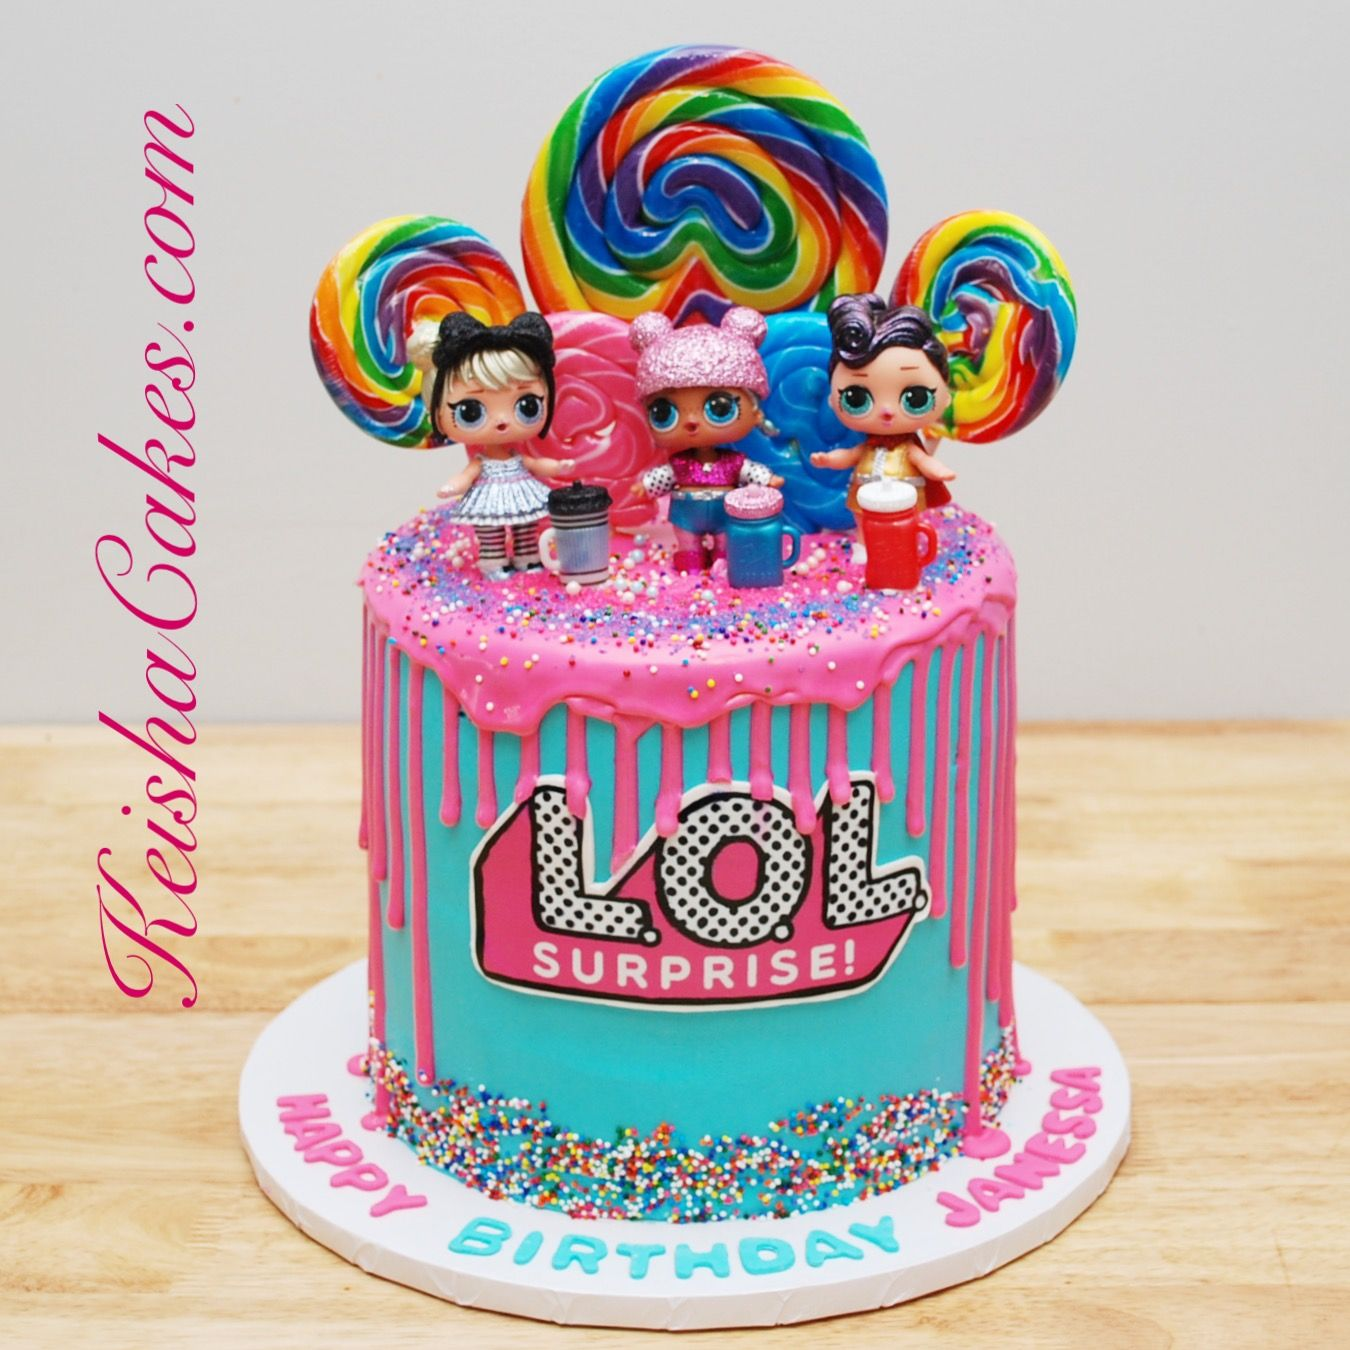 Lol Dolls Birthday Cake Visit Www Keishacakes Com For More Info